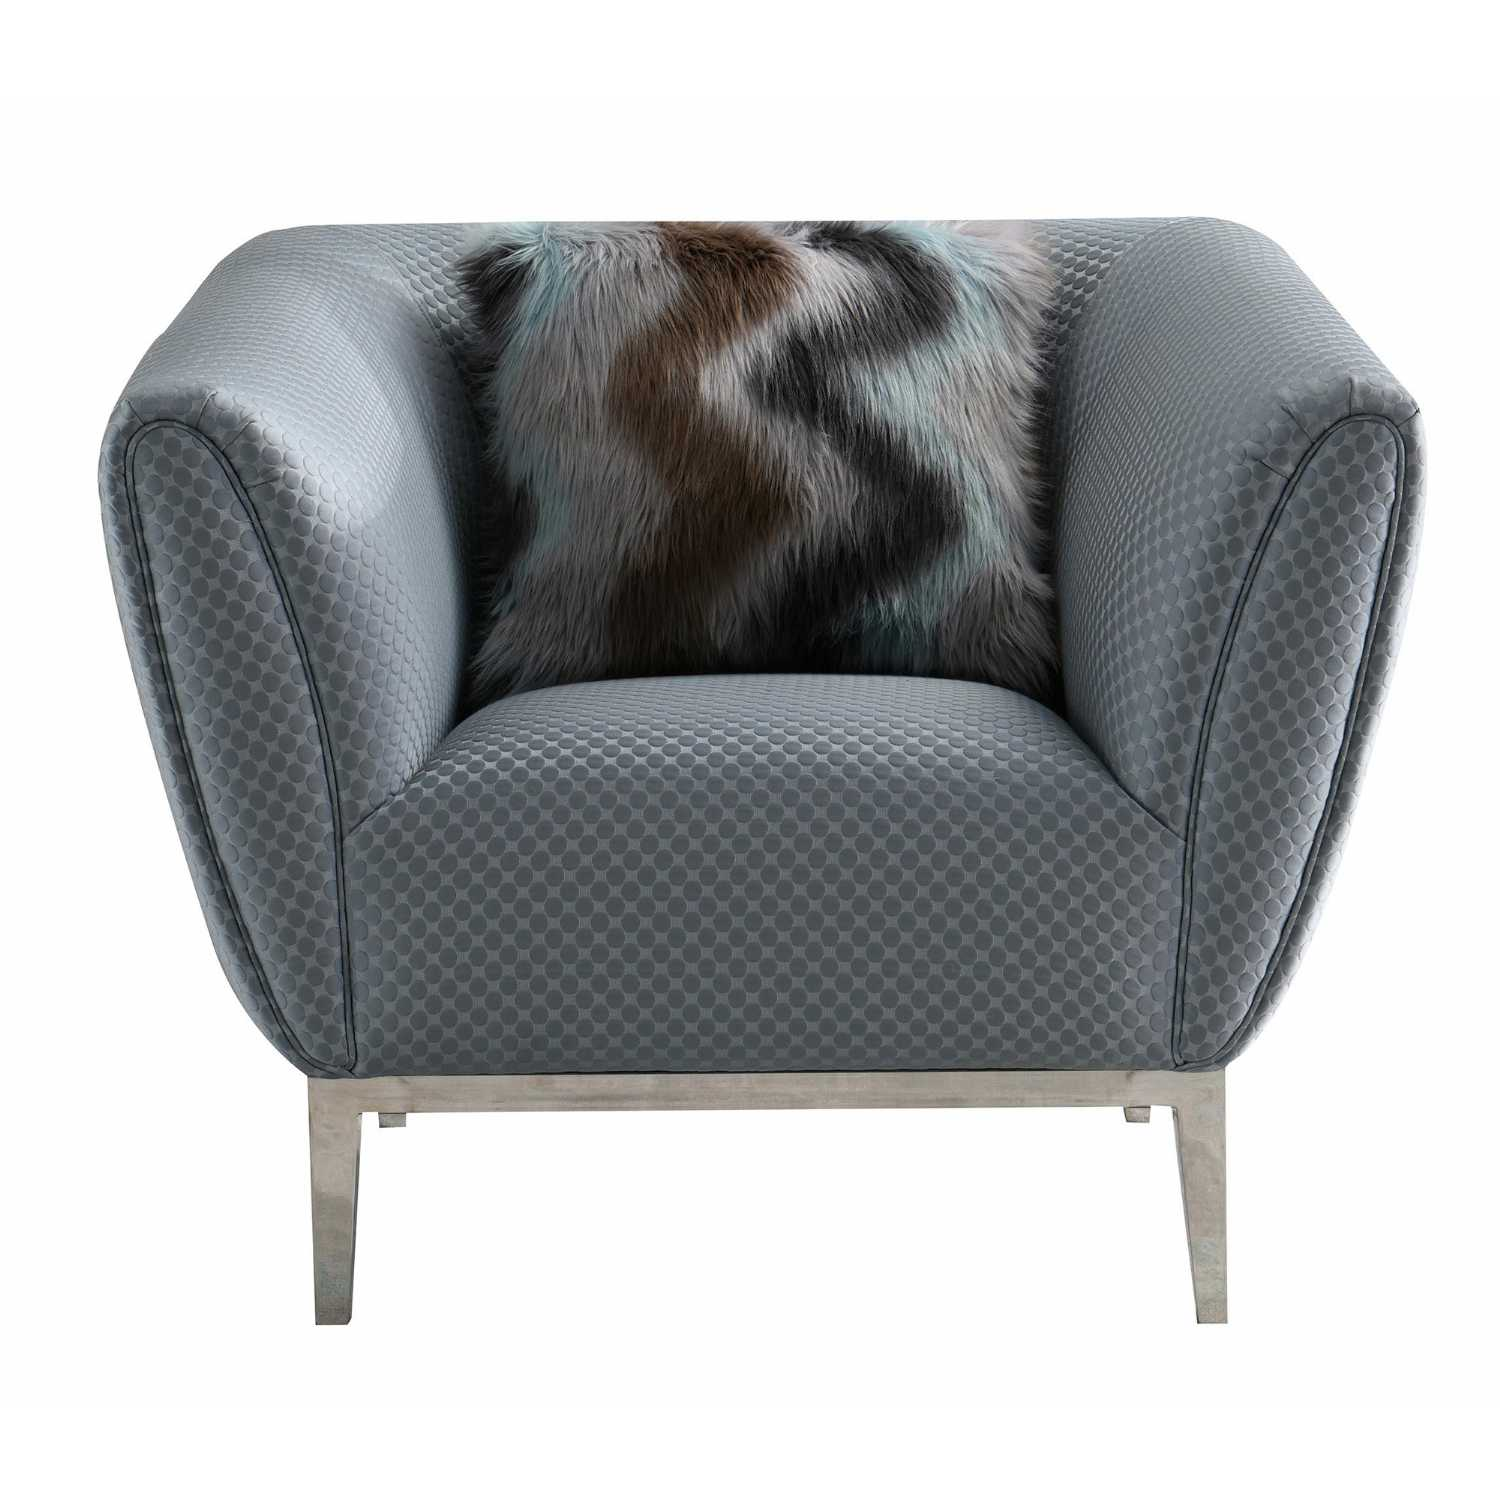 Excellent Modern Grey Circle Stitch Fabric Chair With Chrome Frame And Tapered Feet Dailytribune Chair Design For Home Dailytribuneorg